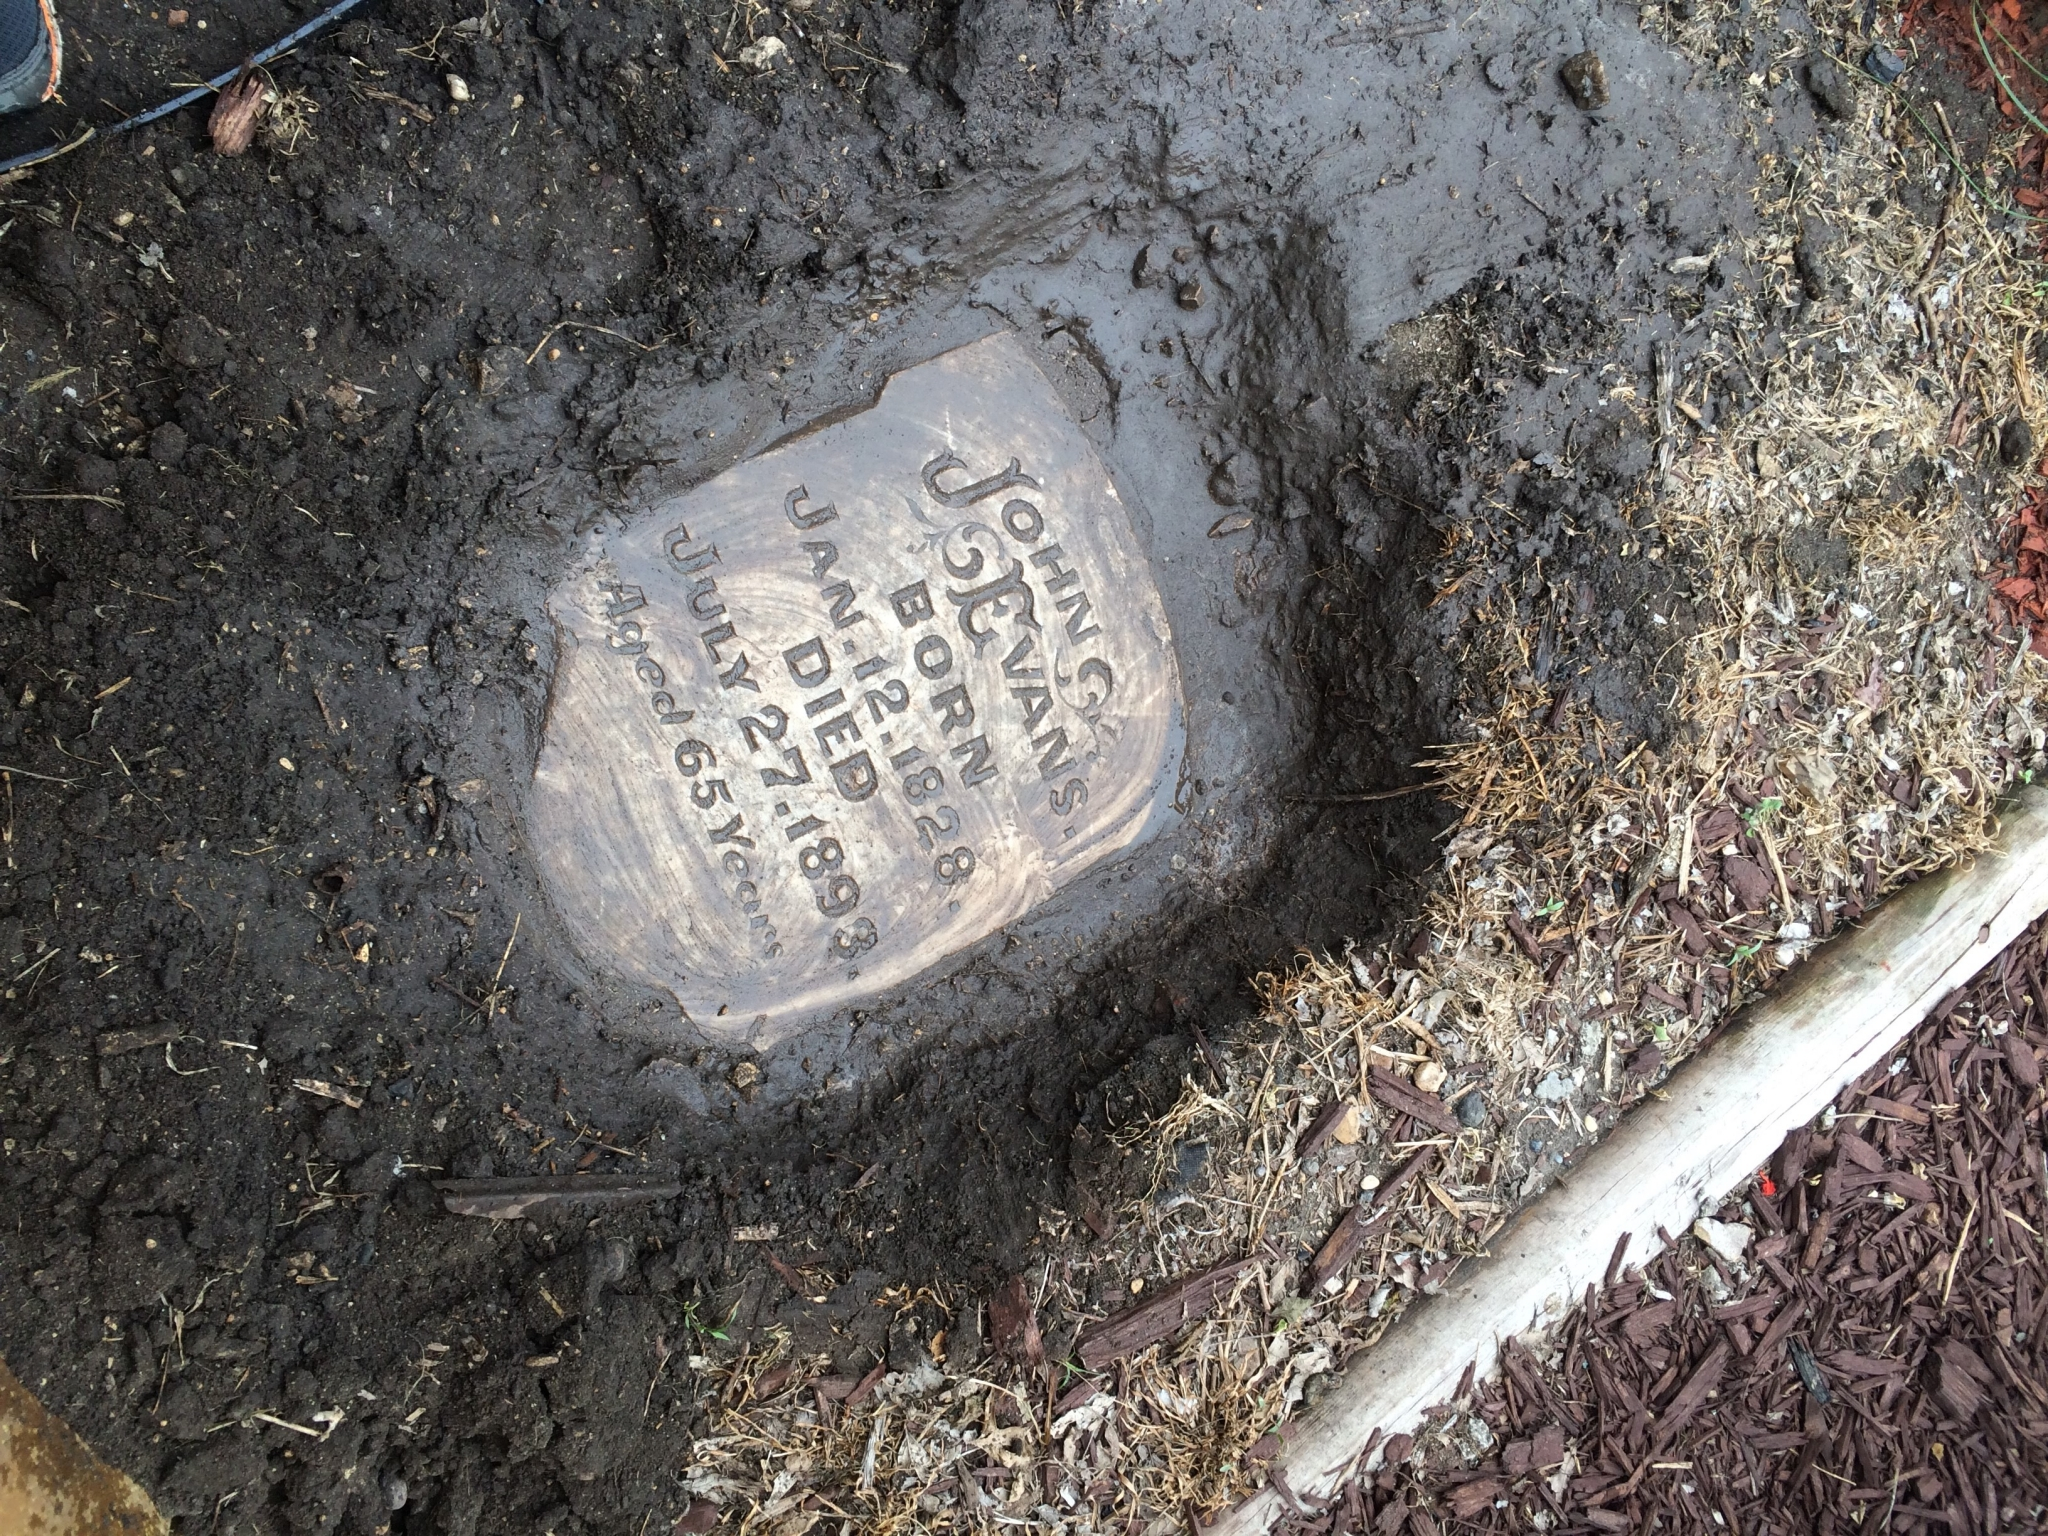 Government hill resident finds tombstone buried in yard